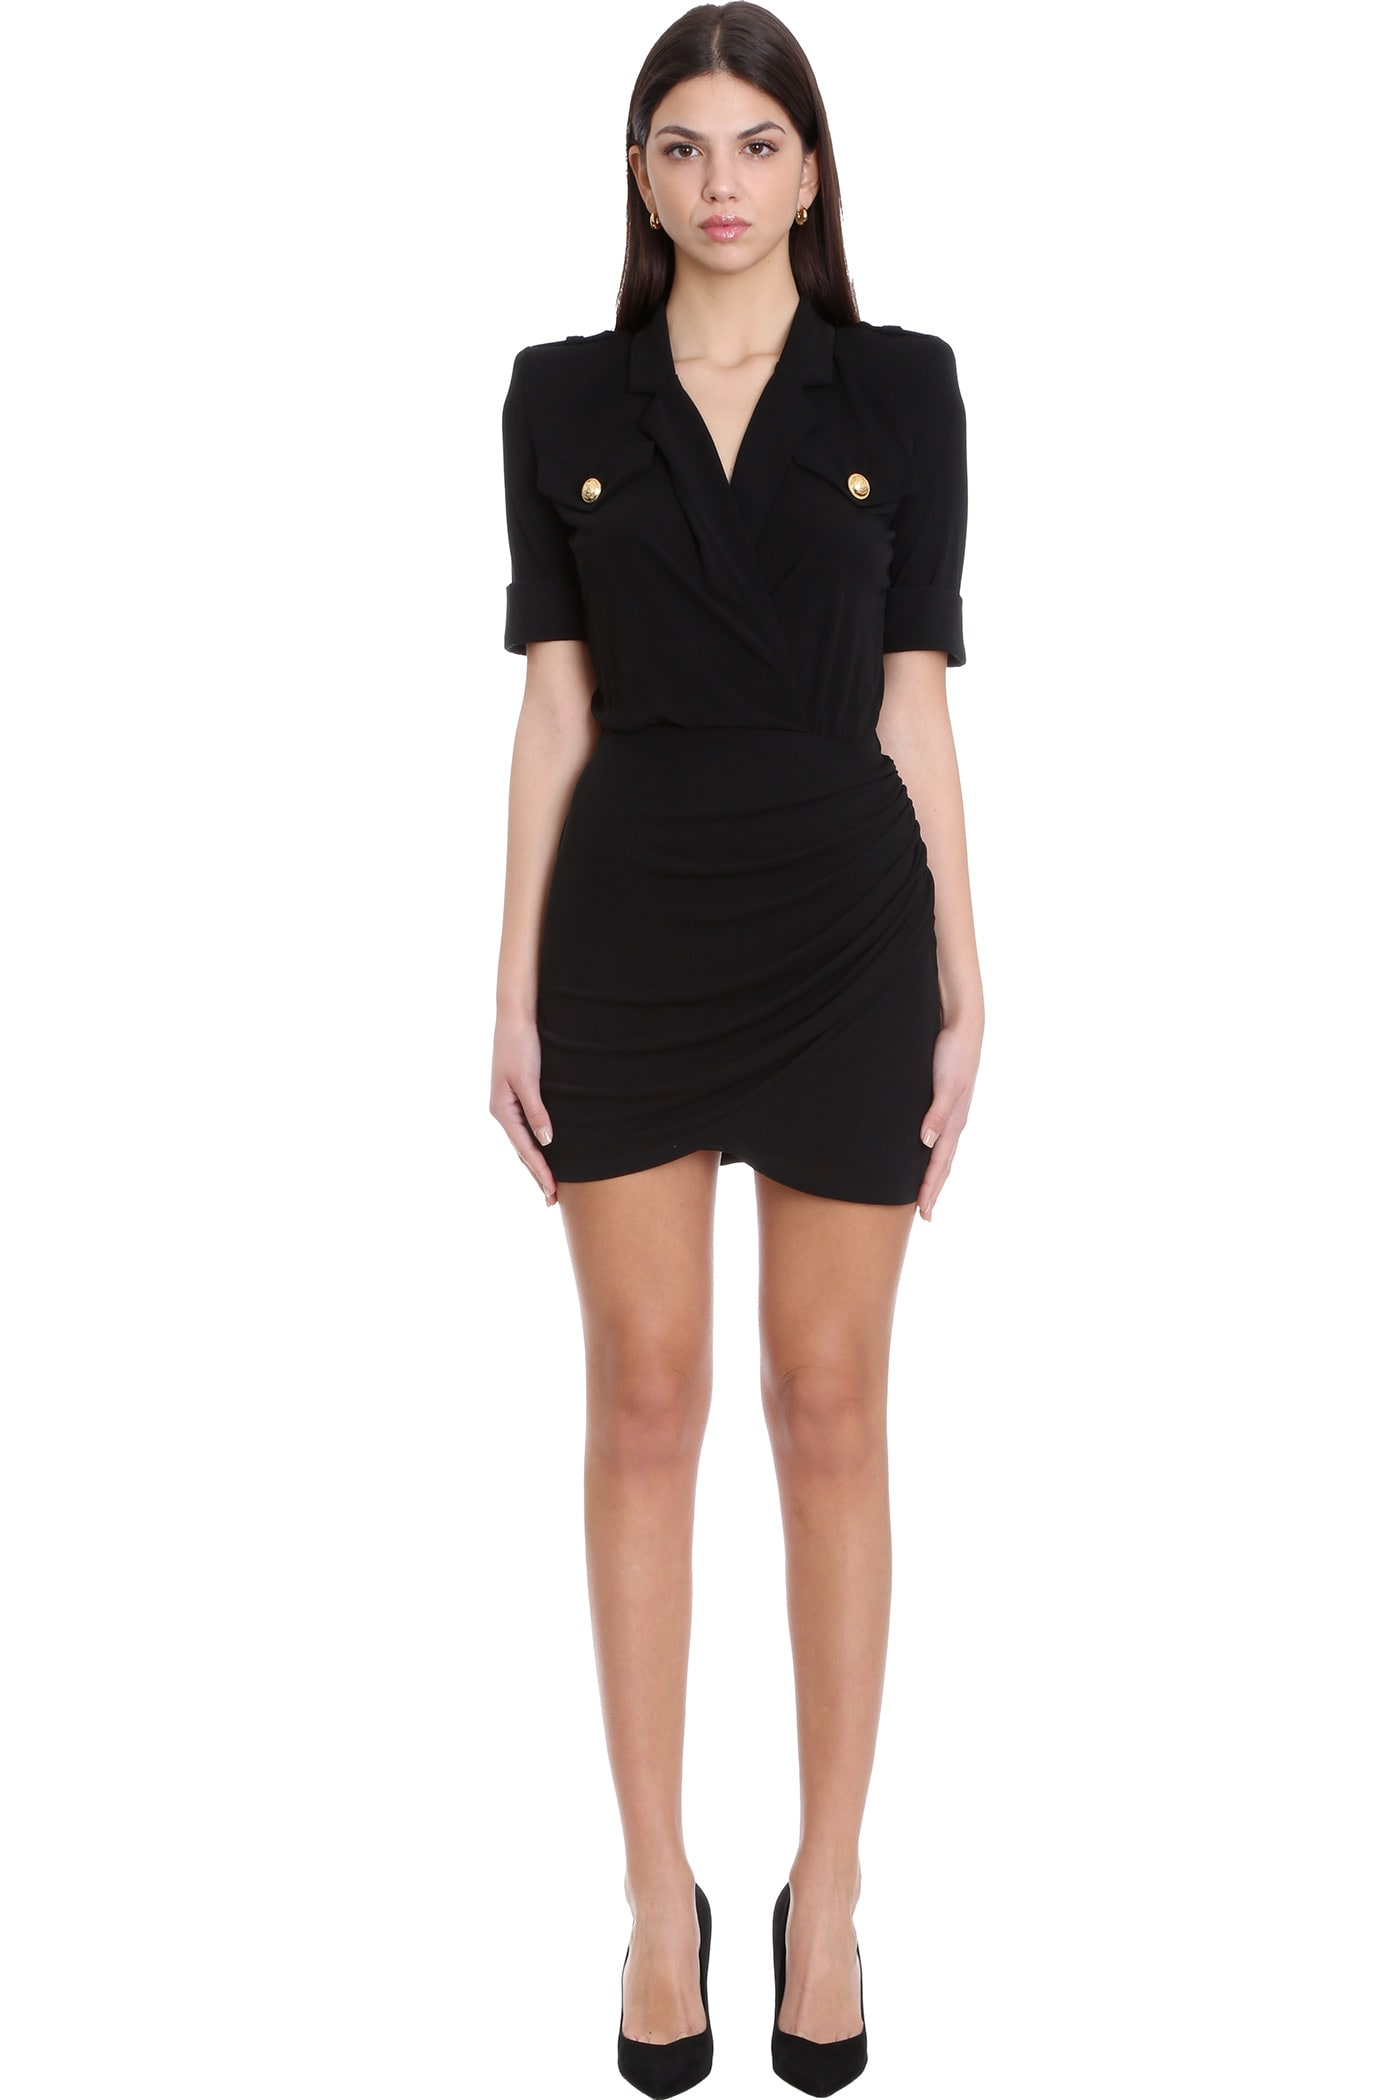 Balmain DRESS IN BLACK VISCOSE